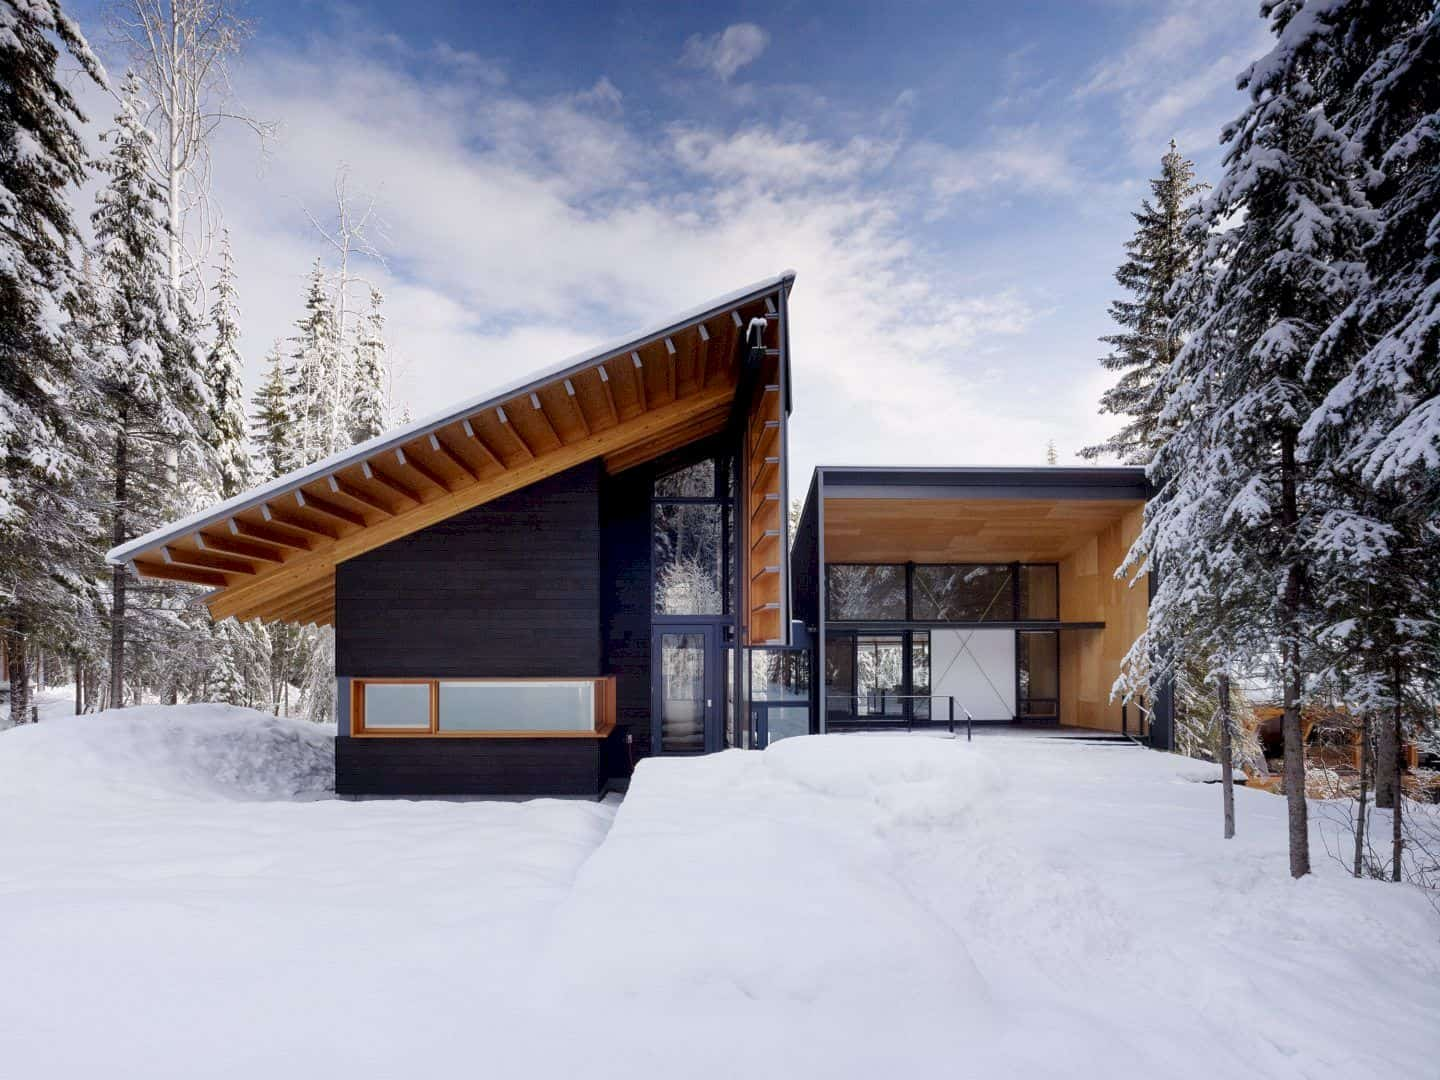 Kicking Horse Residence: A Modern and Rustic House with A Strong Connection to the Mountain Setting